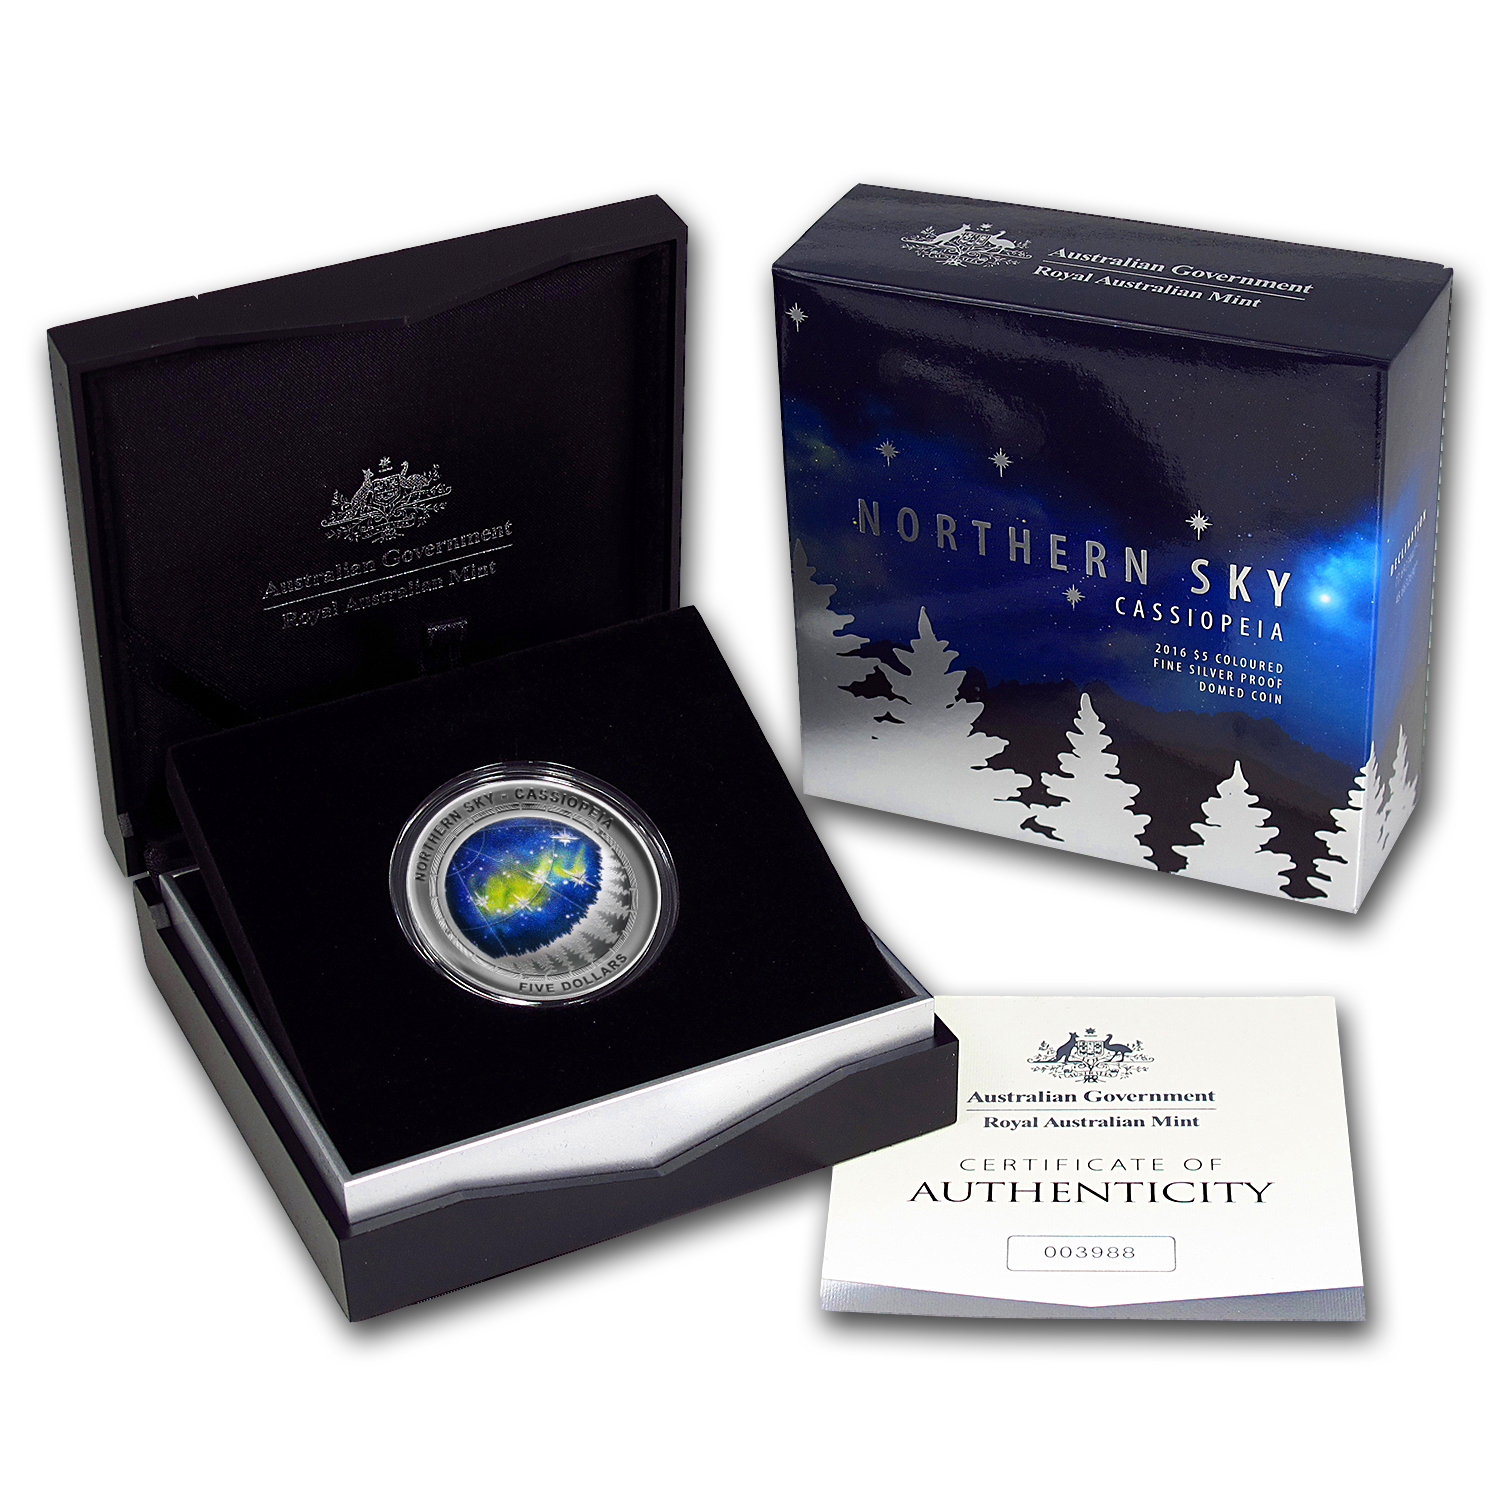 2016 Australia Silver $5 Color Domed Northern Sky Cassiopeia